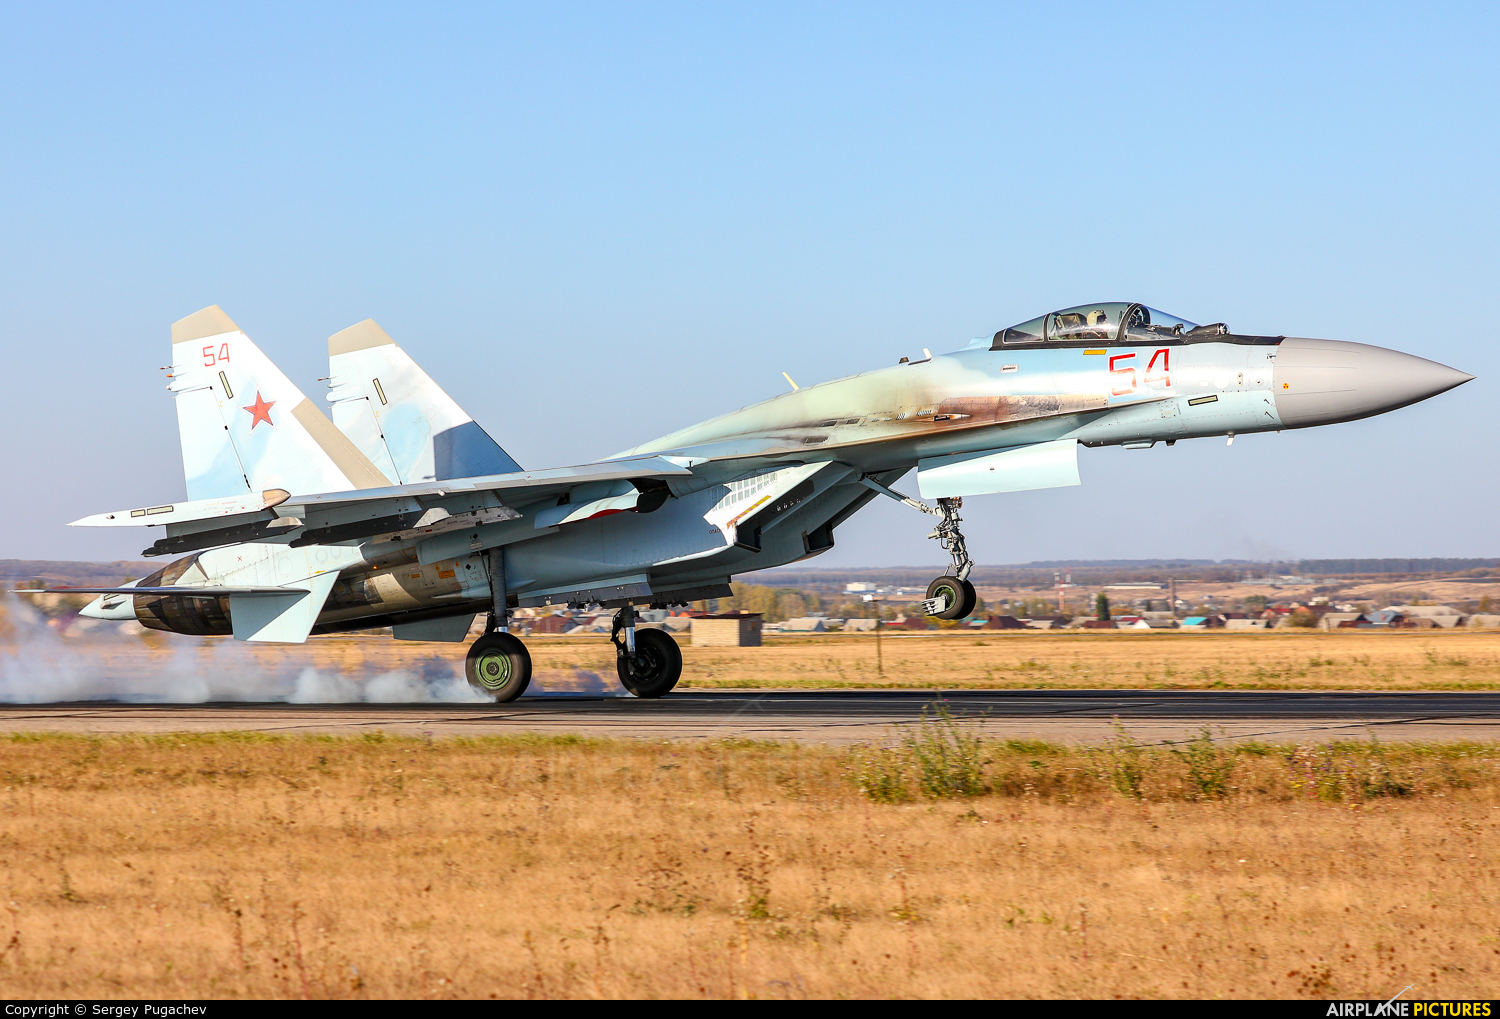 Russia - Air Force 54 aircraft at Undisclosed Location